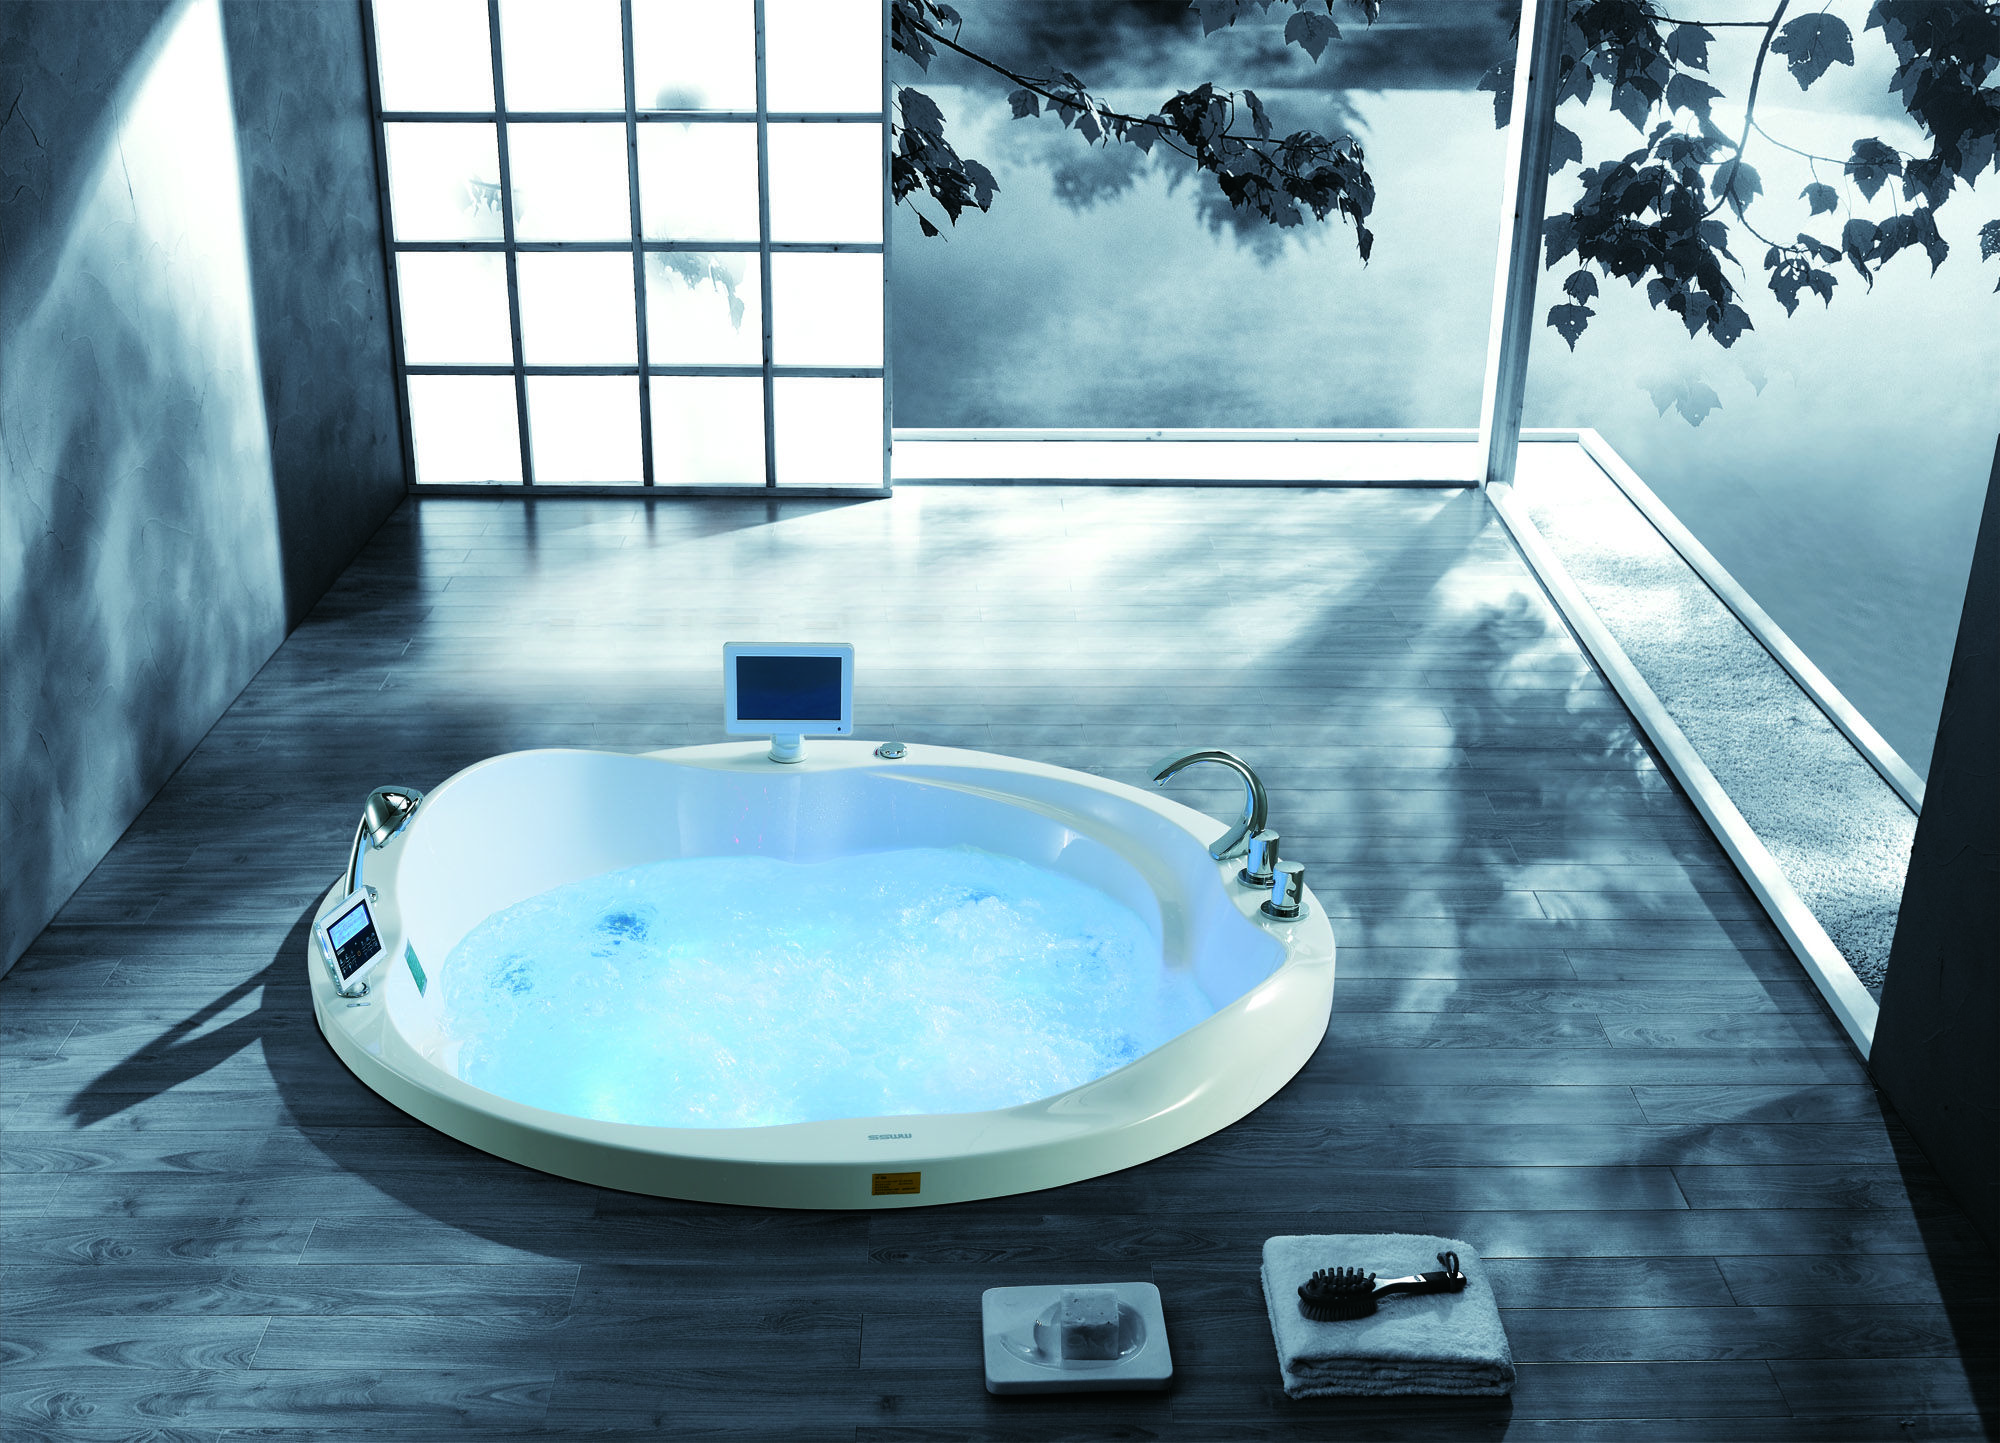 SSWW A608 Massage Bathtub | Bathtub | Pinterest | Bathtubs